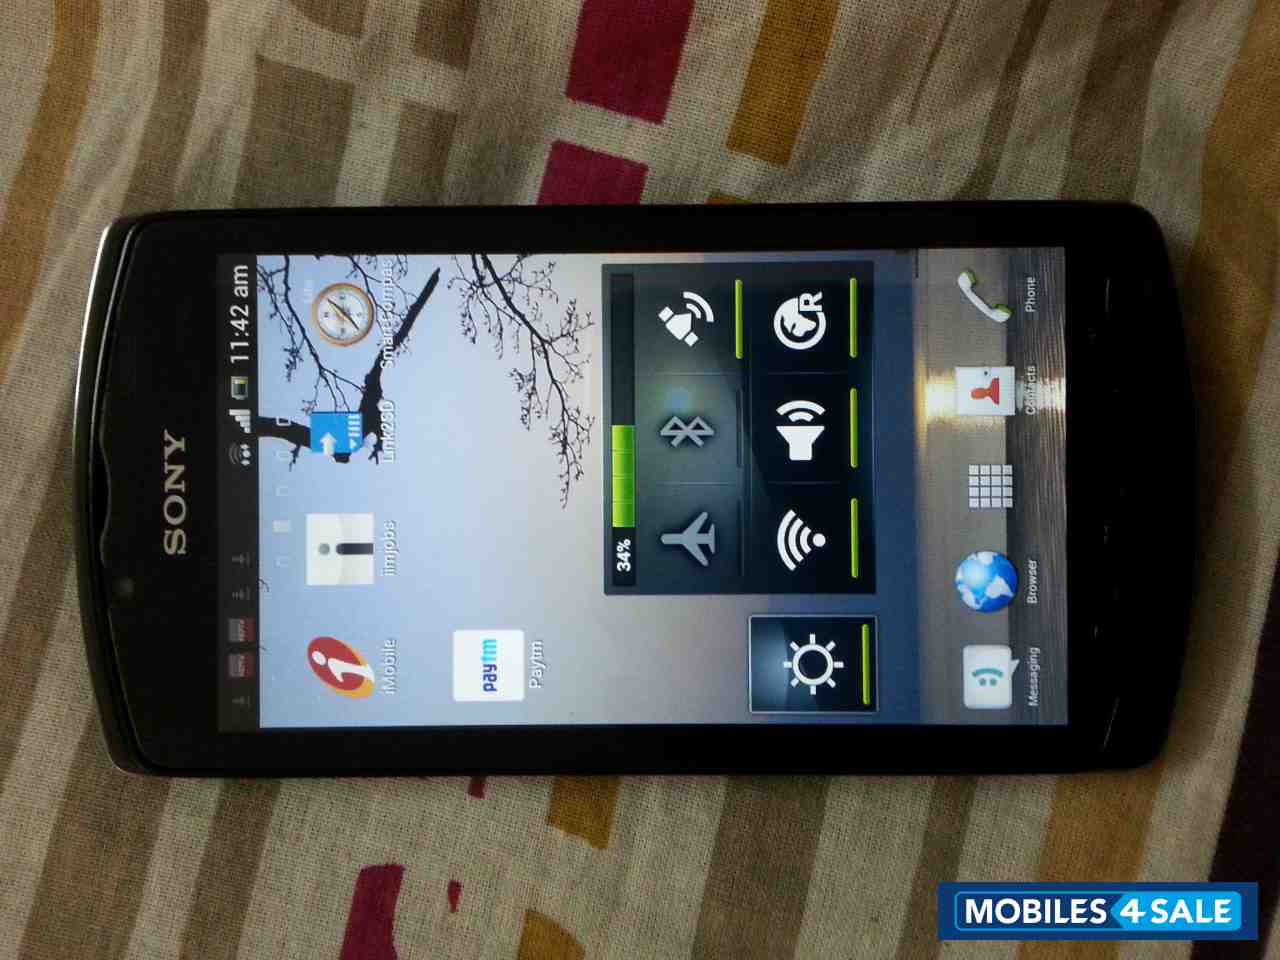 Black Sony Xperia neo L Photo 1  Album ID - 35856Xperia Neo L Black